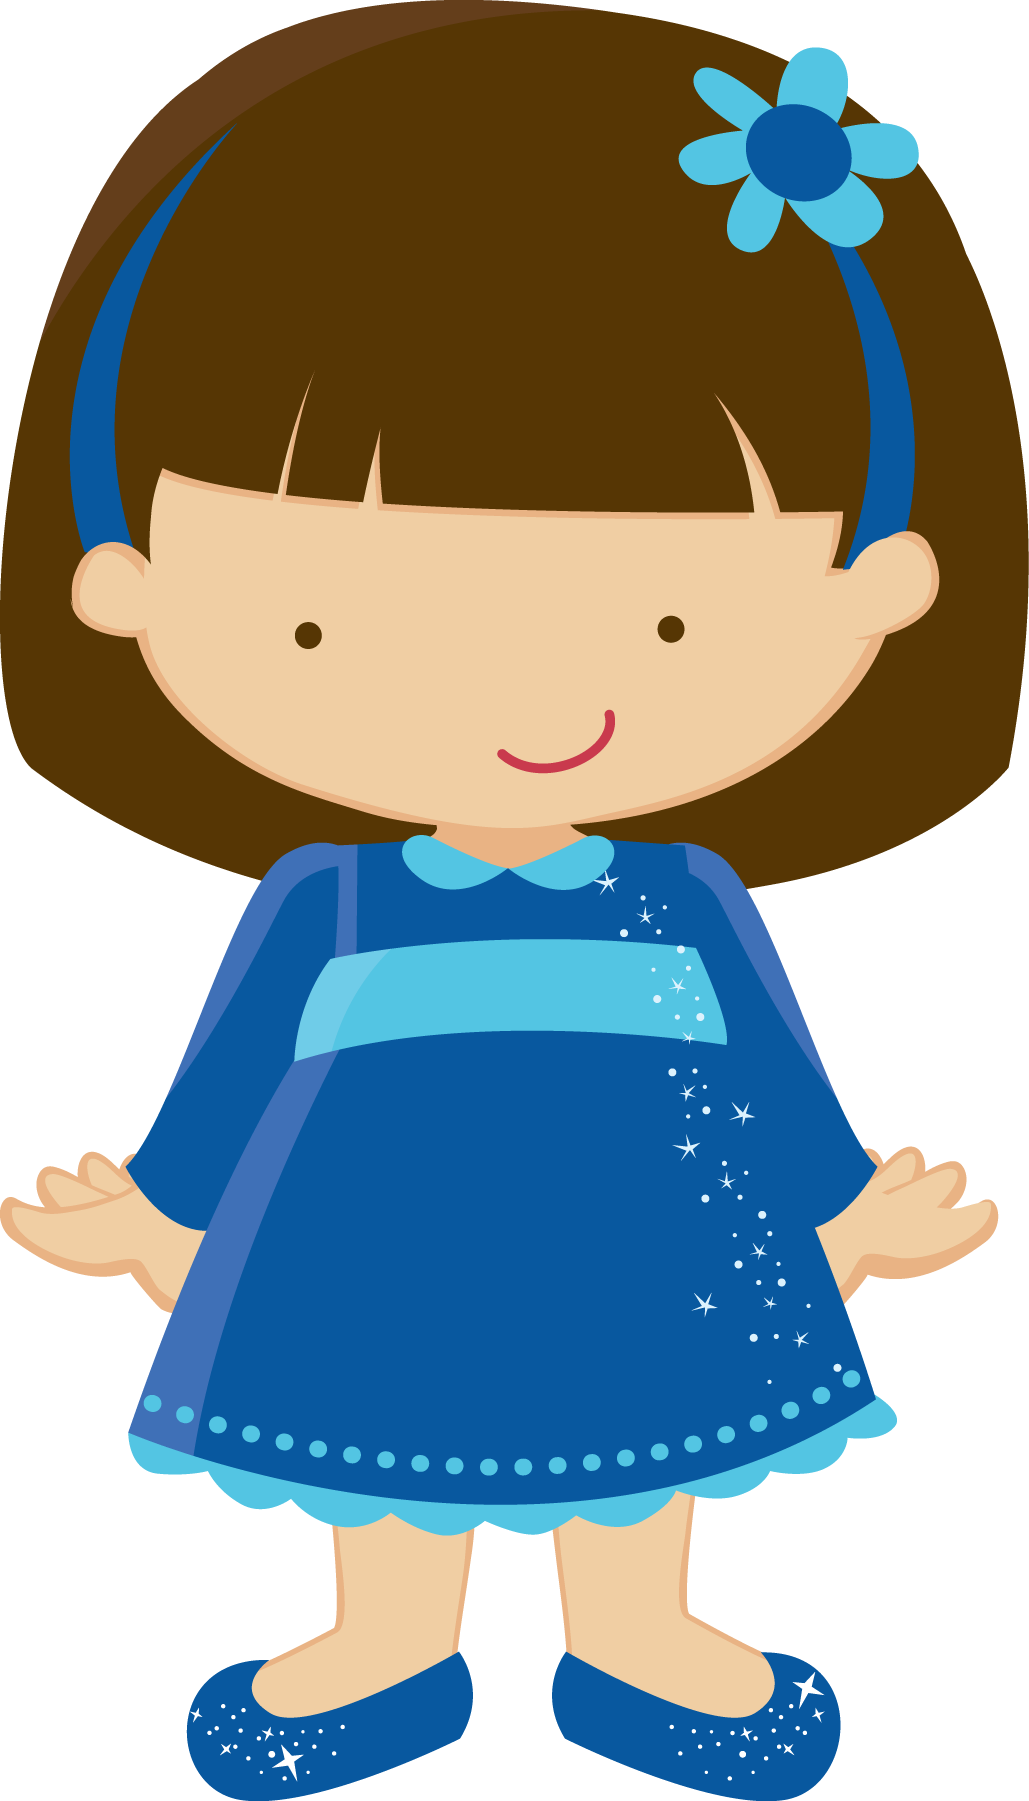 Ham clipart cartoon. Zwd unlitmenorah girl png